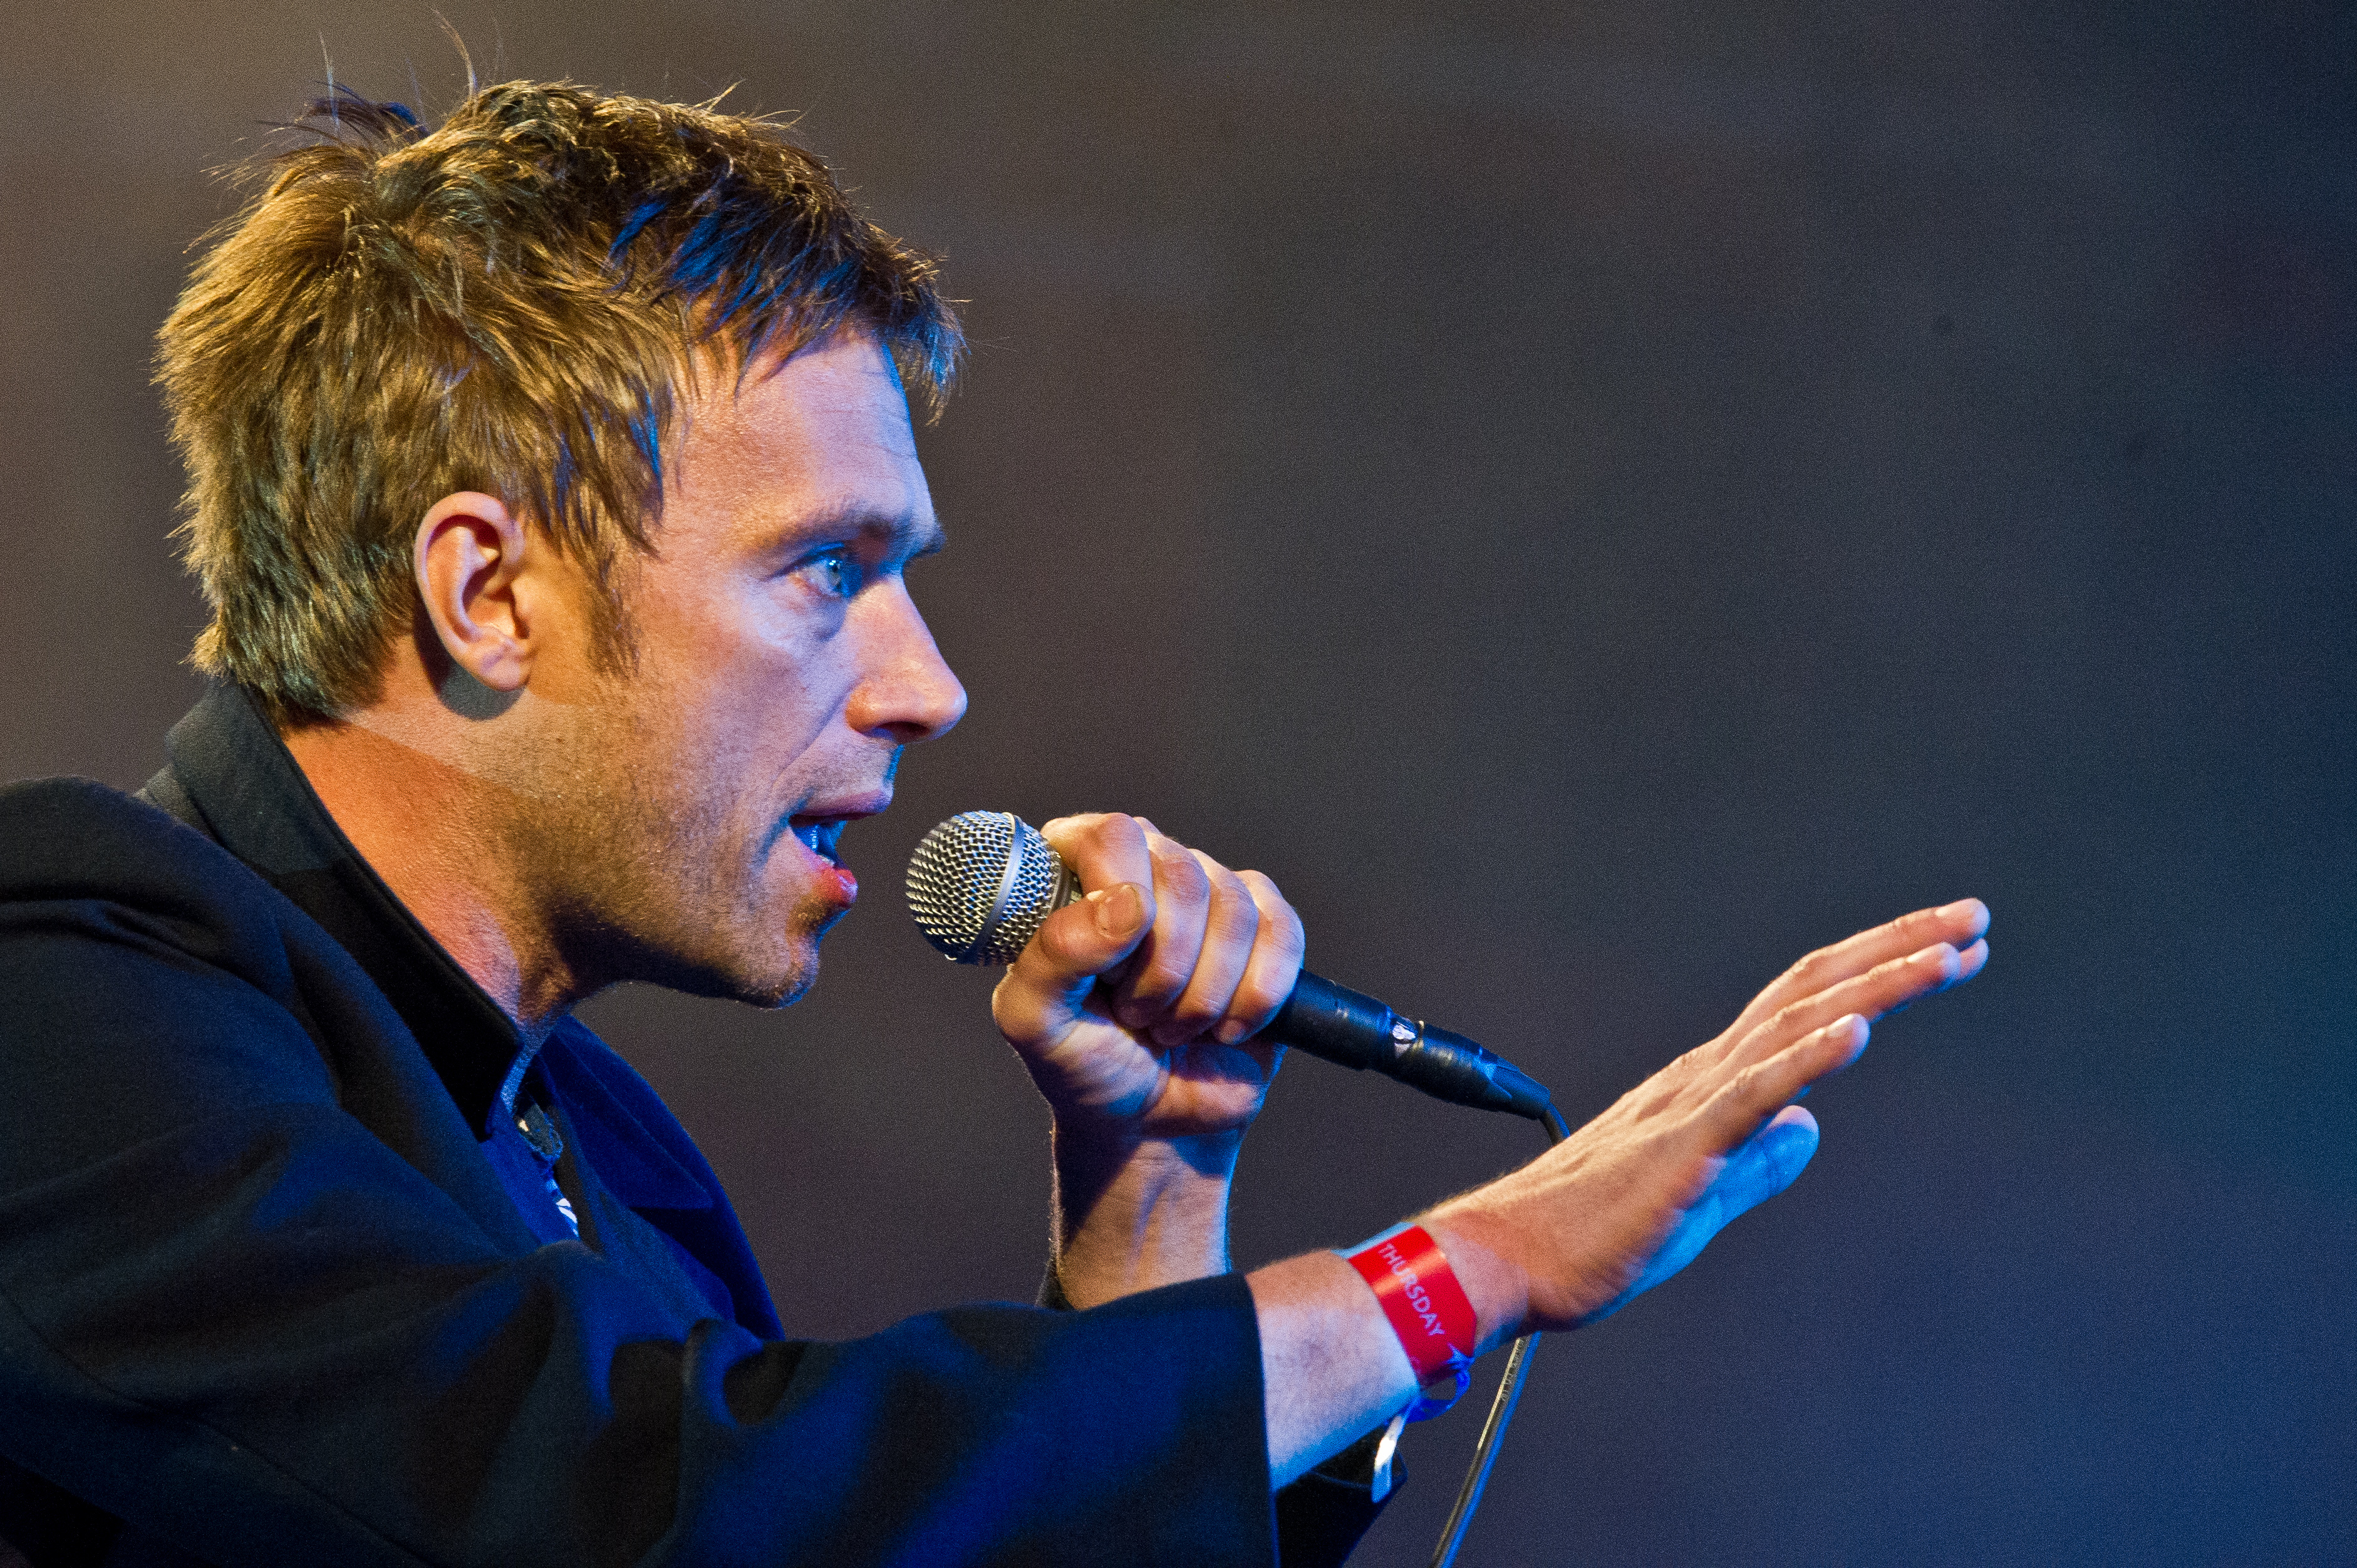 The 50-year old son of father Hazel Albarn and mother Keith Albarn Damon Albarn in 2018 photo. Damon Albarn earned a  million dollar salary - leaving the net worth at 40 million in 2018